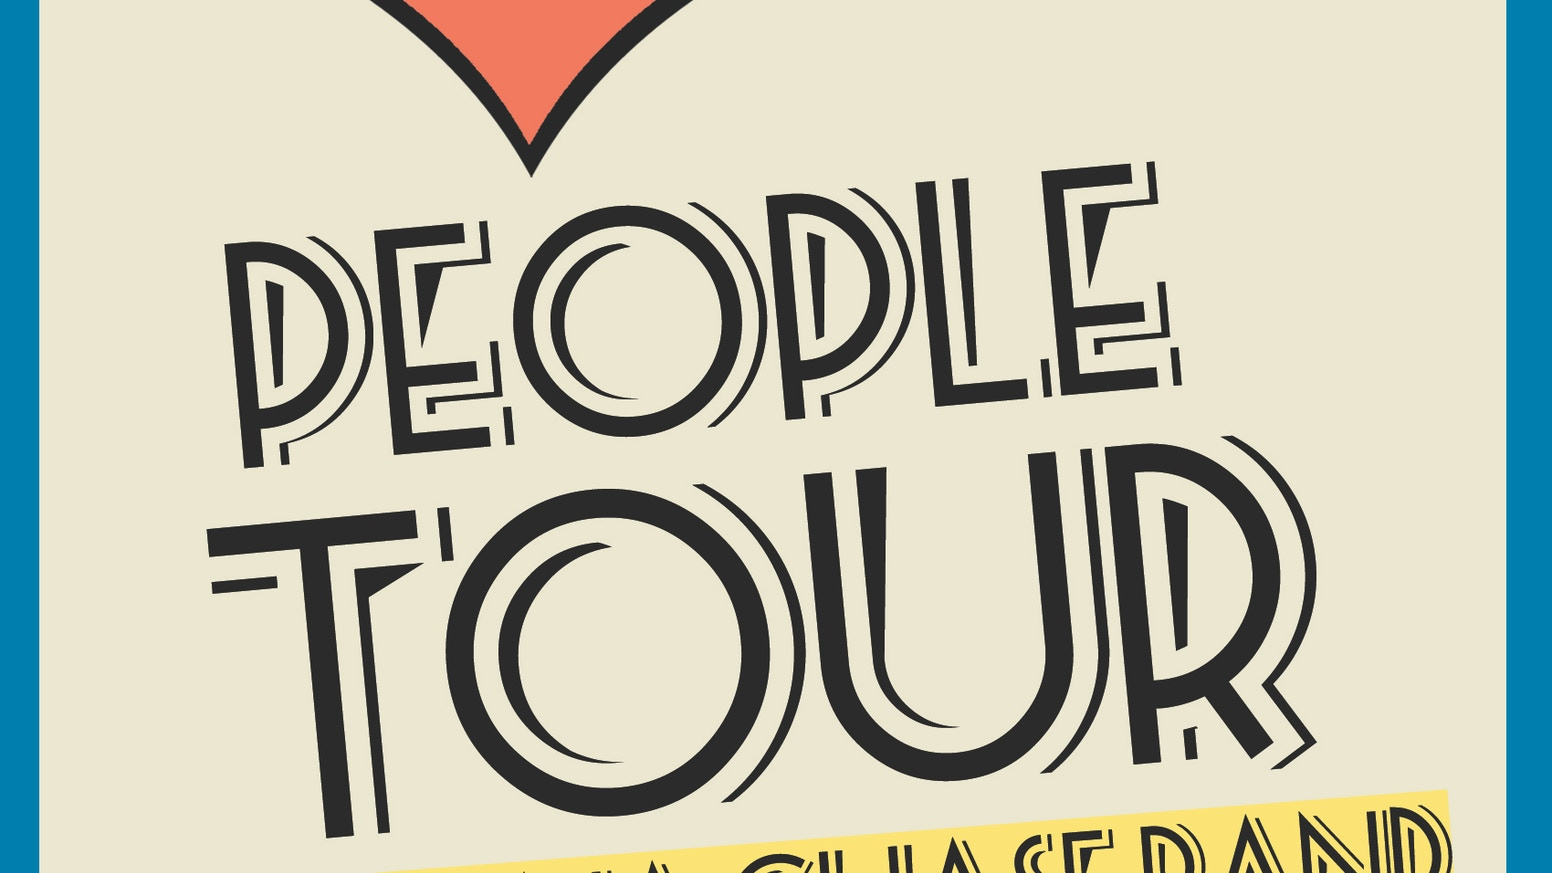 put the i heart people tour on the road by johanna chase kickstarter